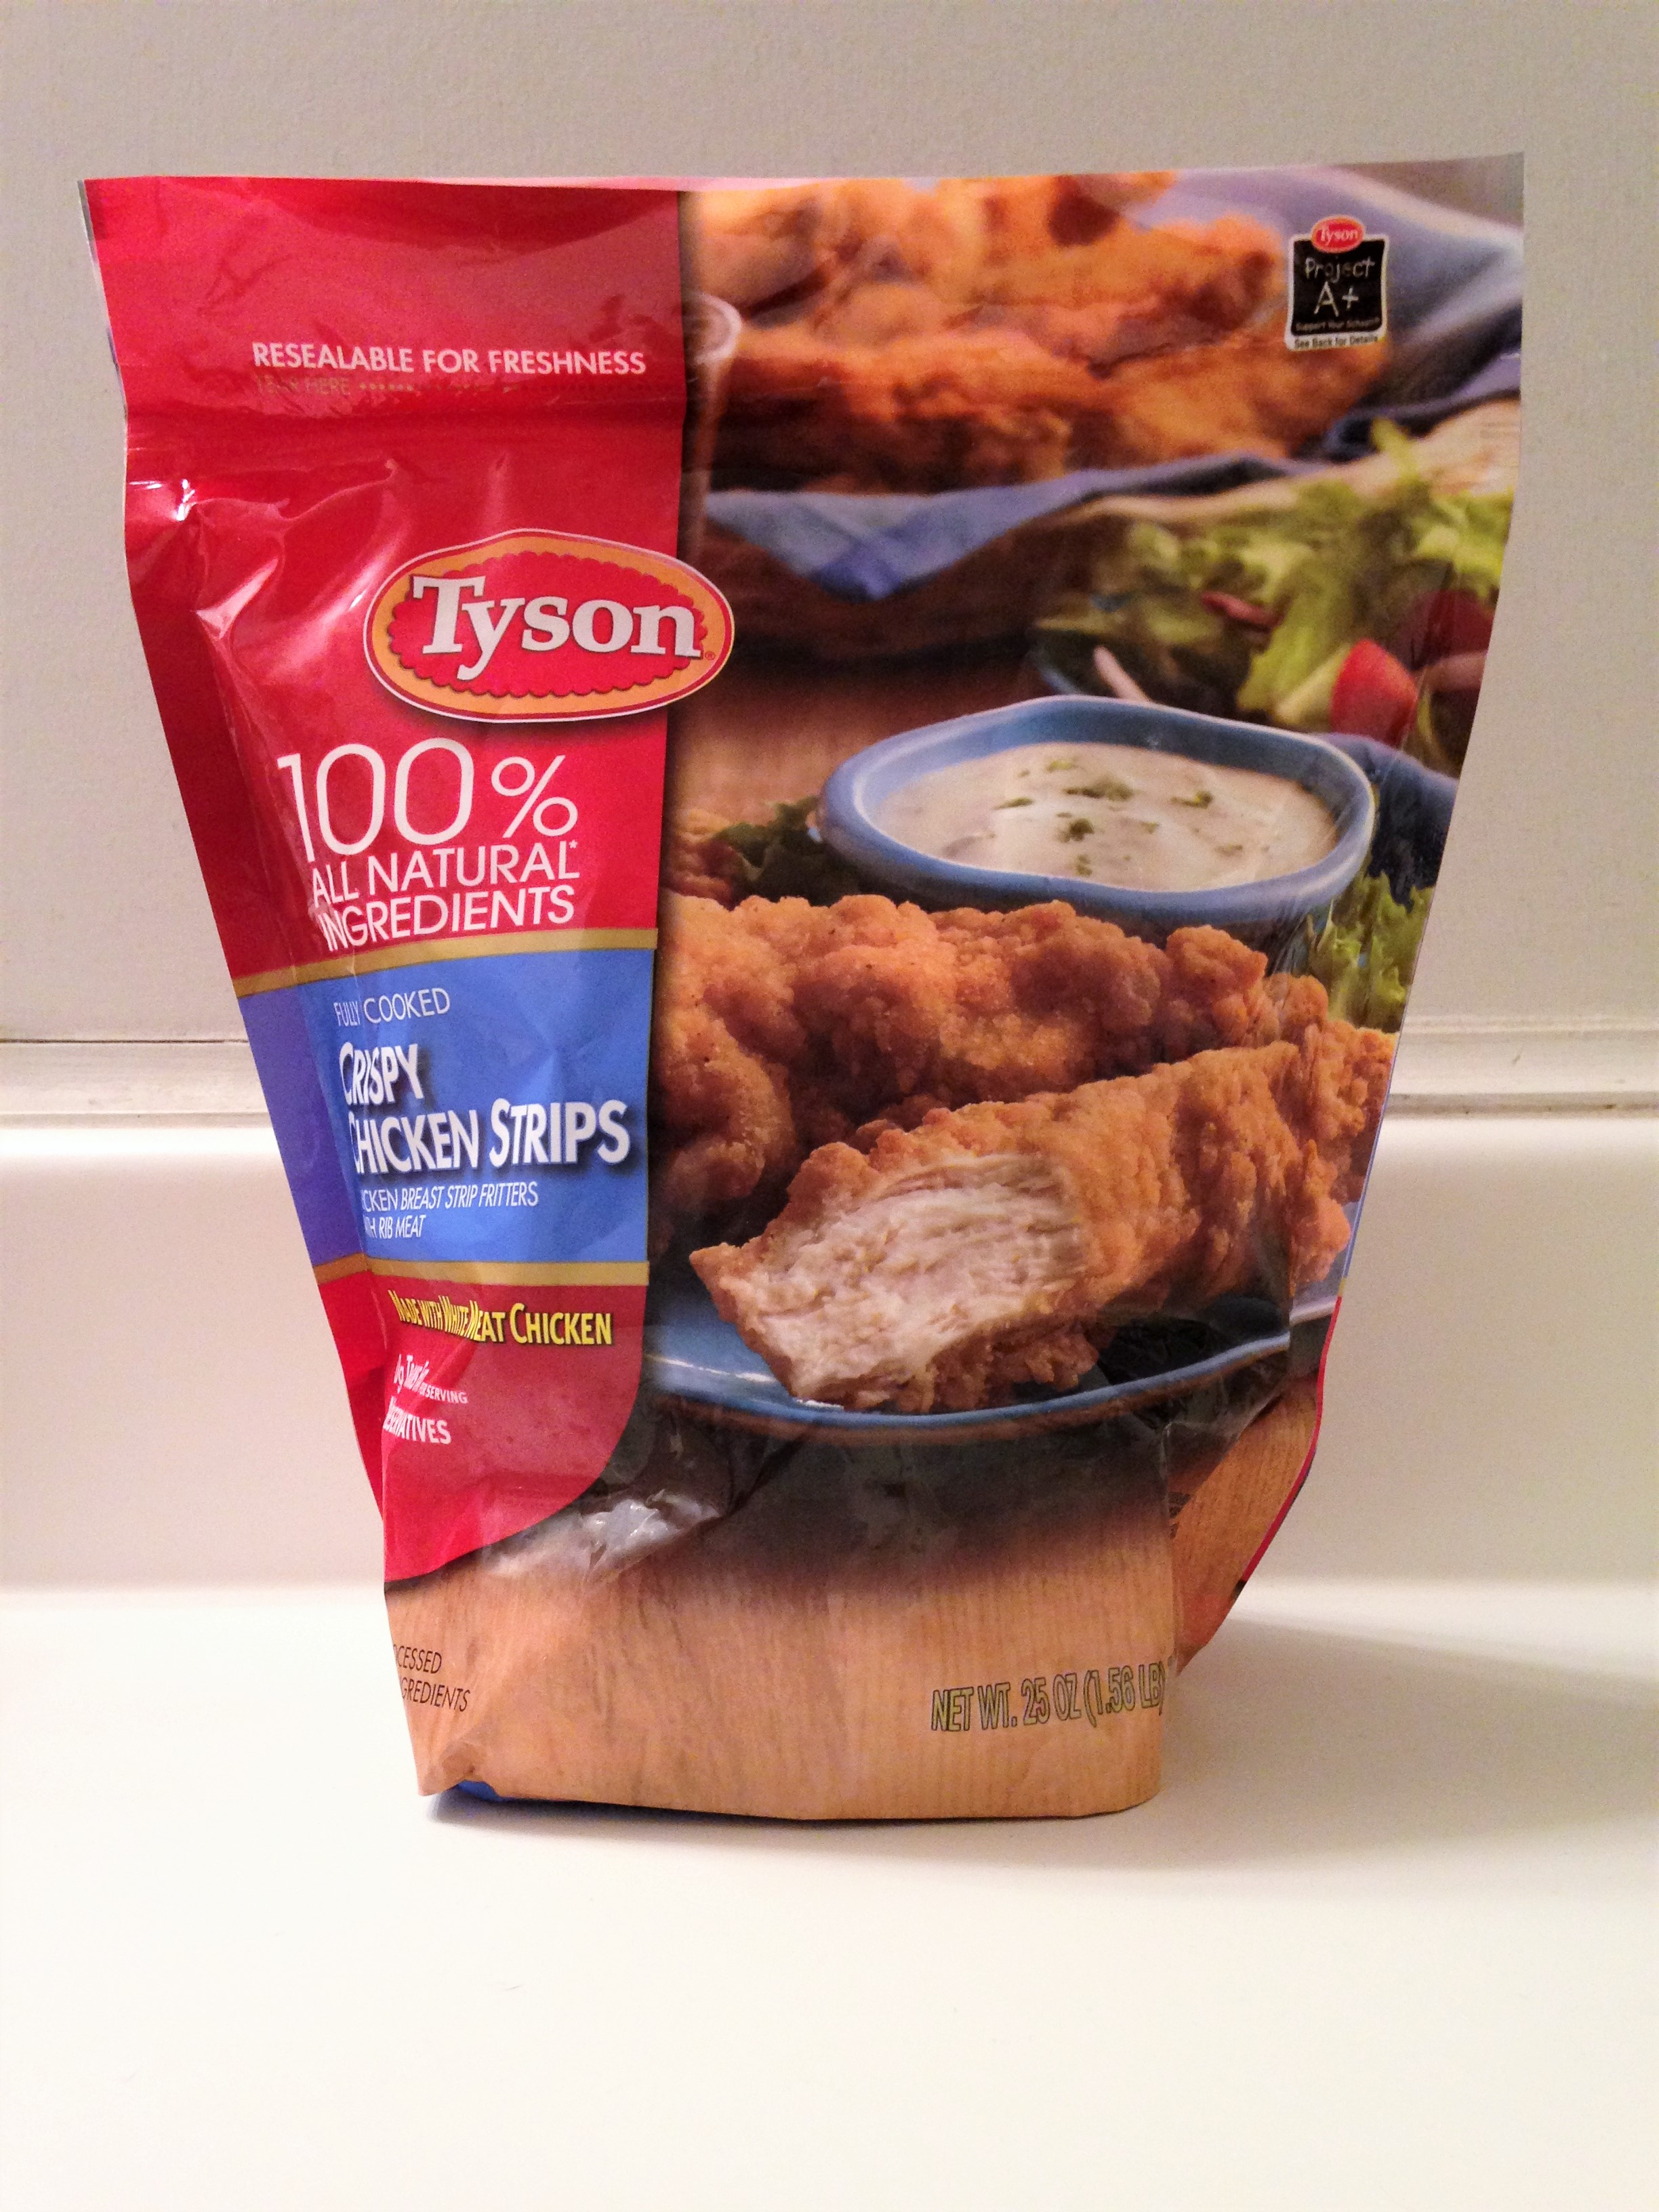 Tyson Recalls Nearly 12 Million Pounds of Chicken Strips Because They Might Contain Metal